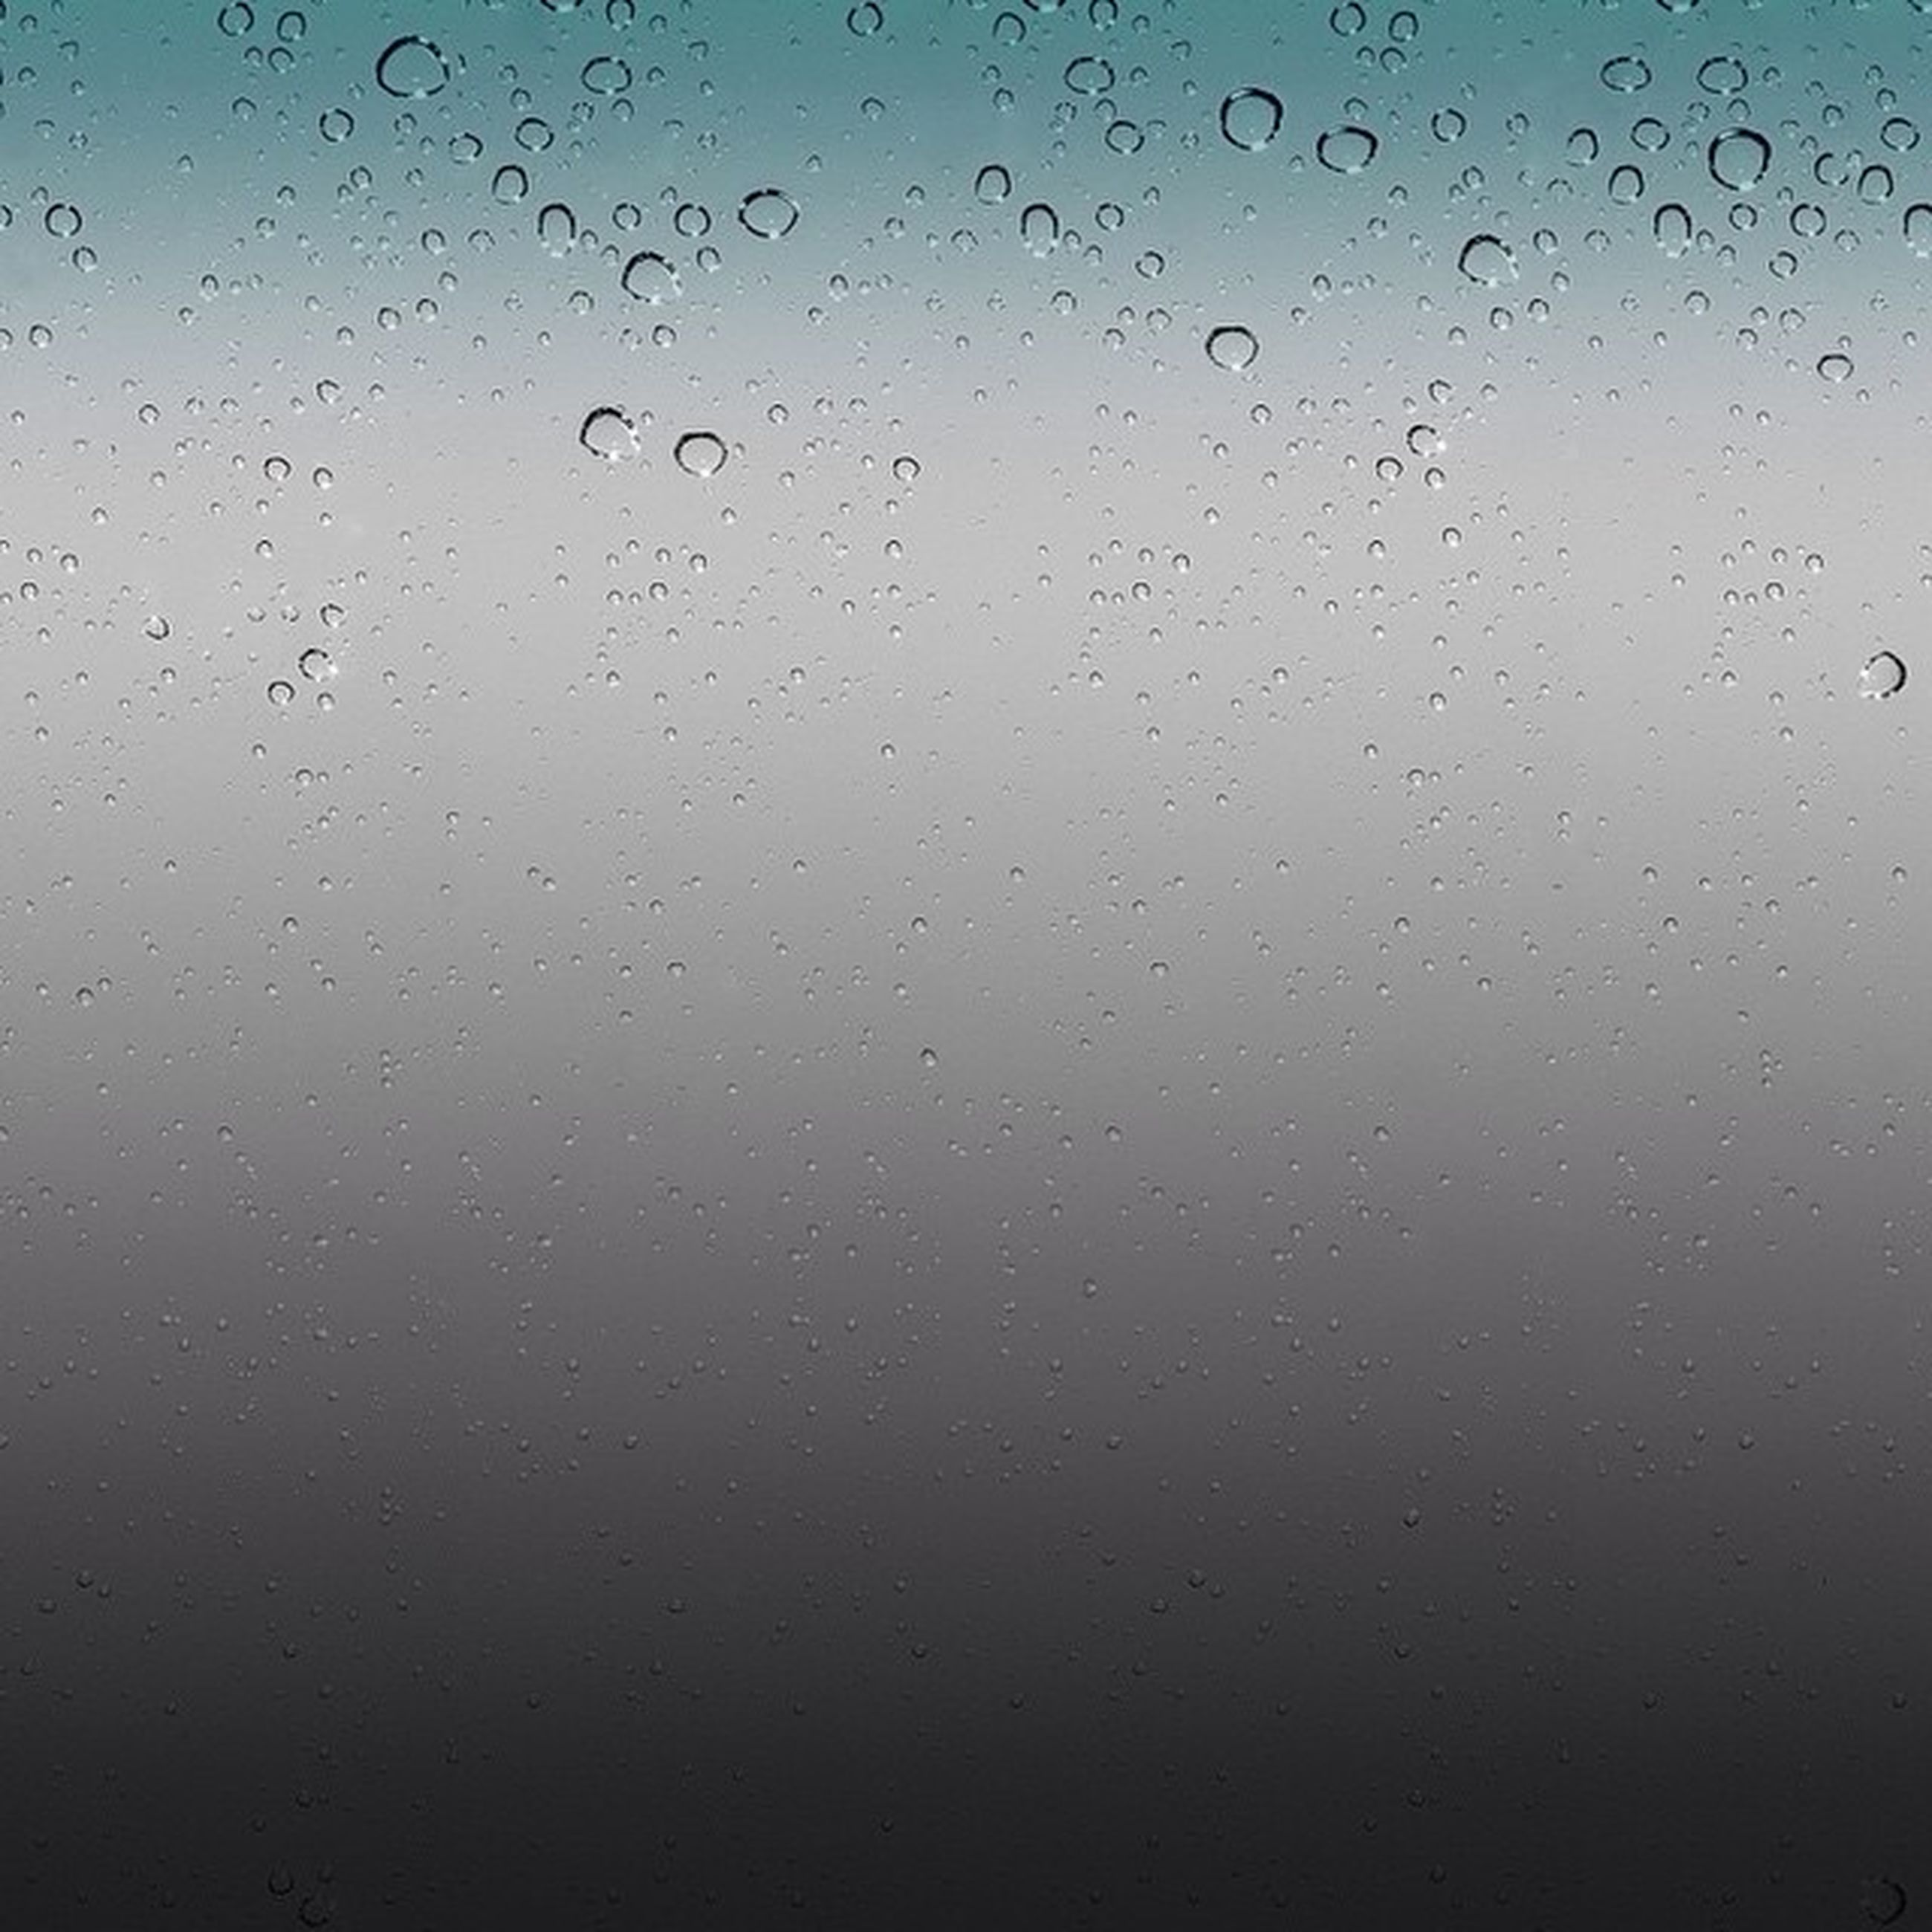 drop, wet, window, water, transparent, sky, rain, weather, raindrop, glass - material, indoors, backgrounds, full frame, nature, dusk, glass, focus on foreground, season, cloud - sky, no people